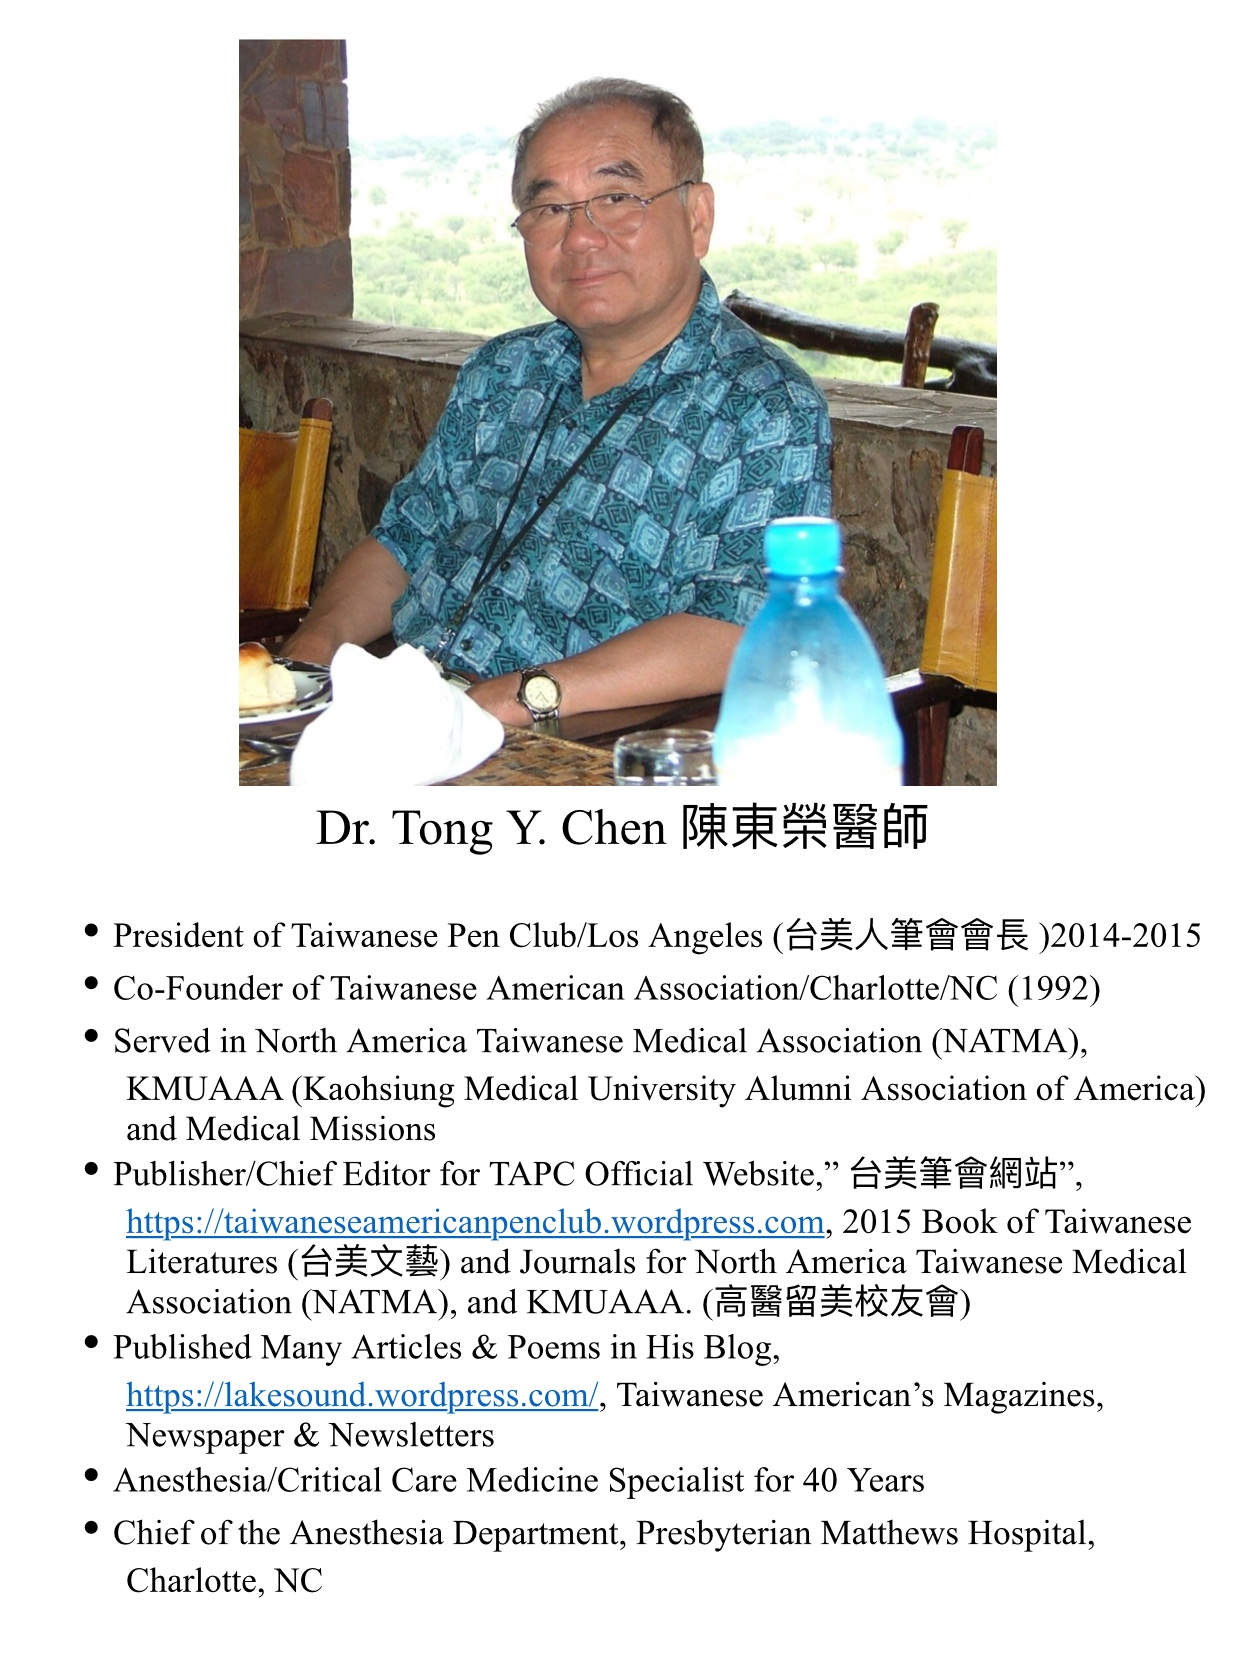 255. Dr. Tong Y. Chen 陳東榮醫師